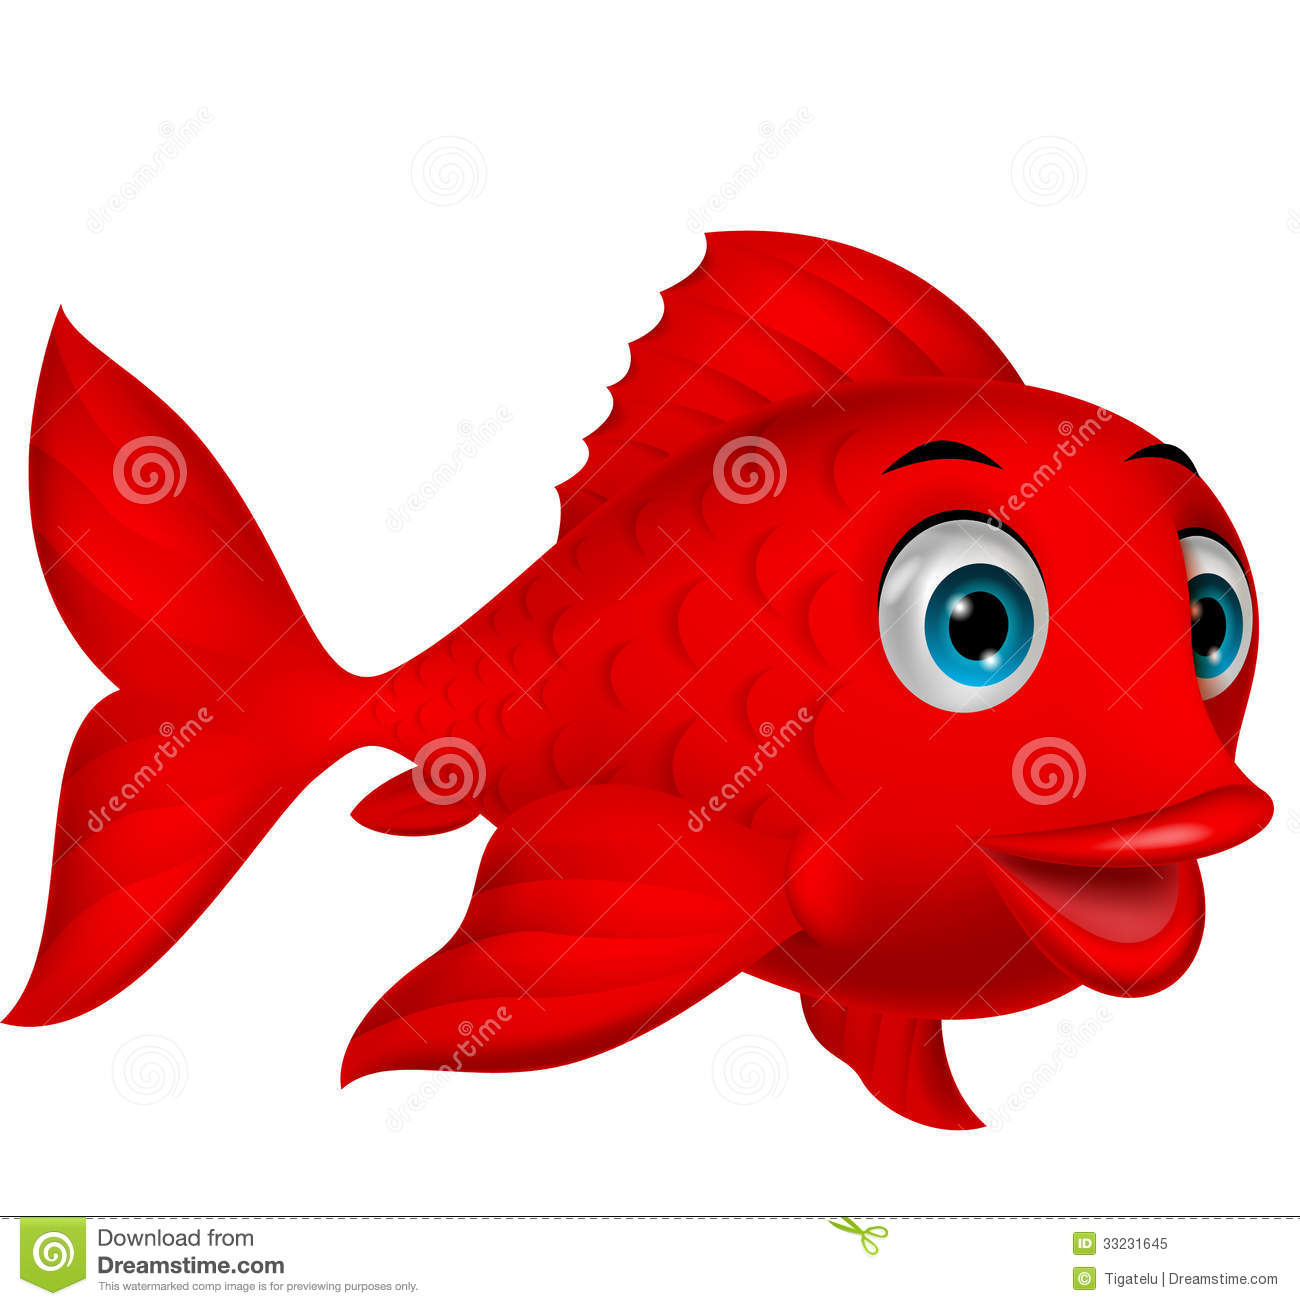 Royalty Free Stock Photo Cute Red Fish Cartoon Illustration Image33231645 on fish cartoon character